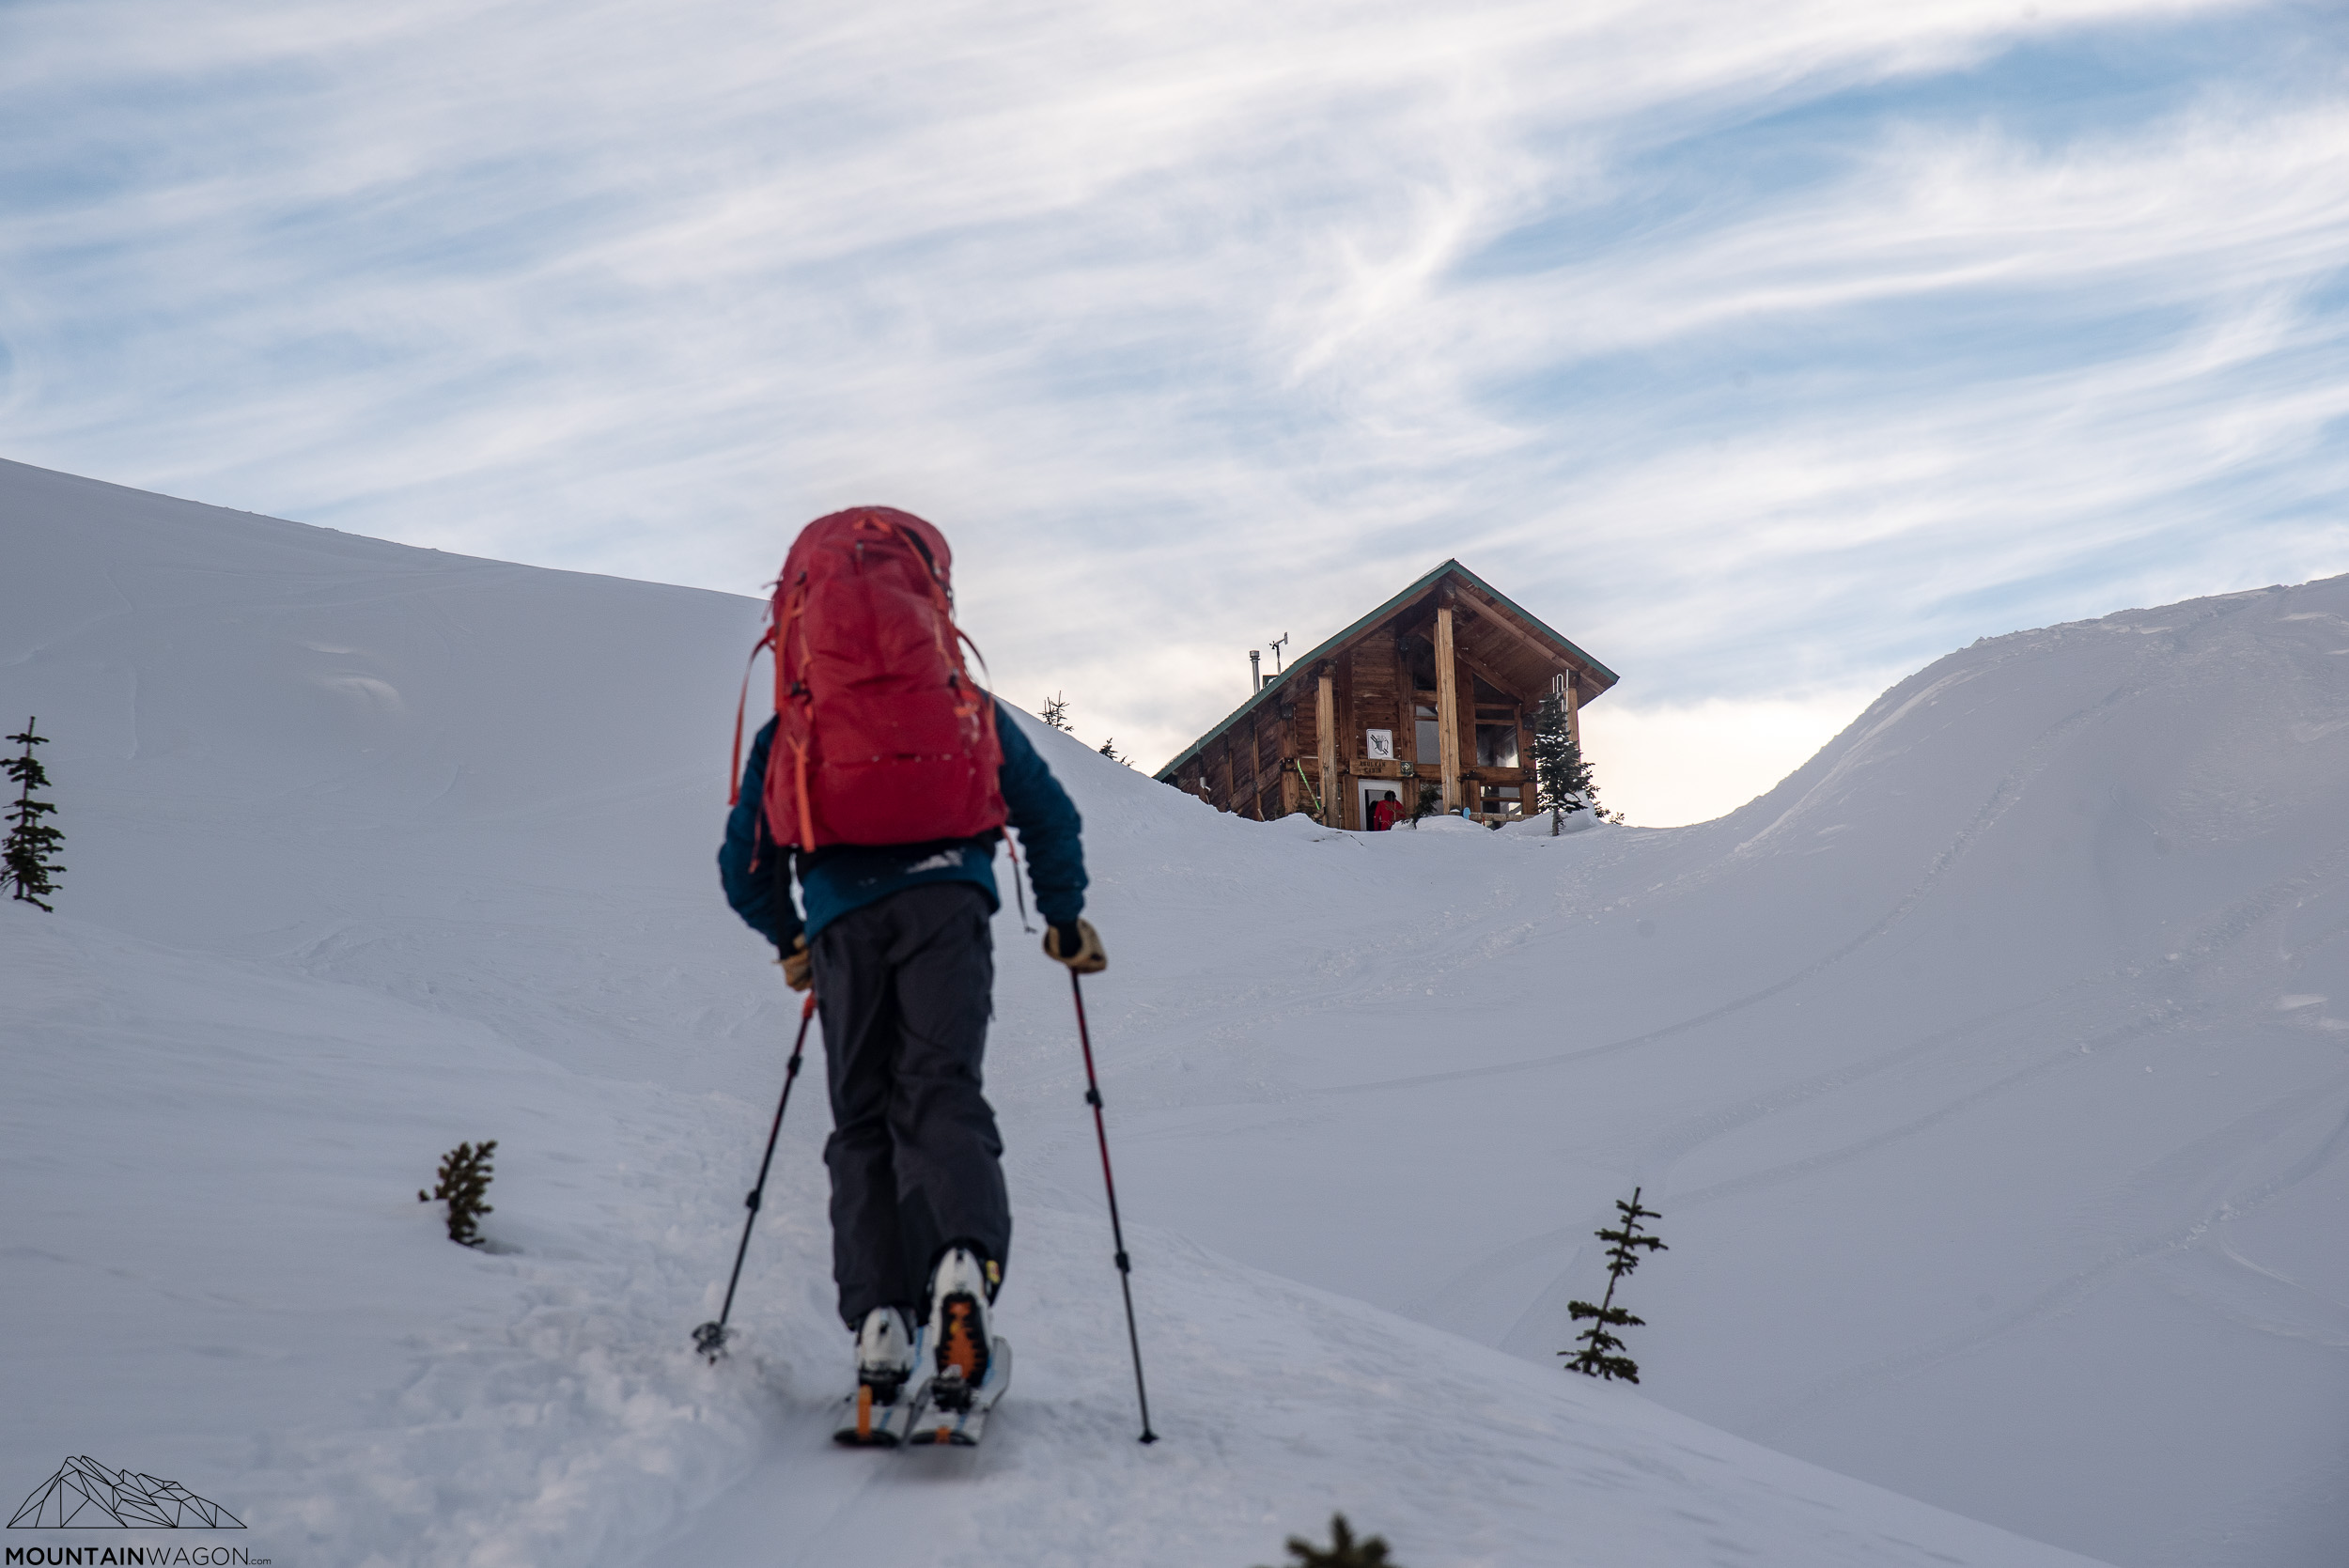 Final approach to the Asulkan Hut - under shockingly clear skies